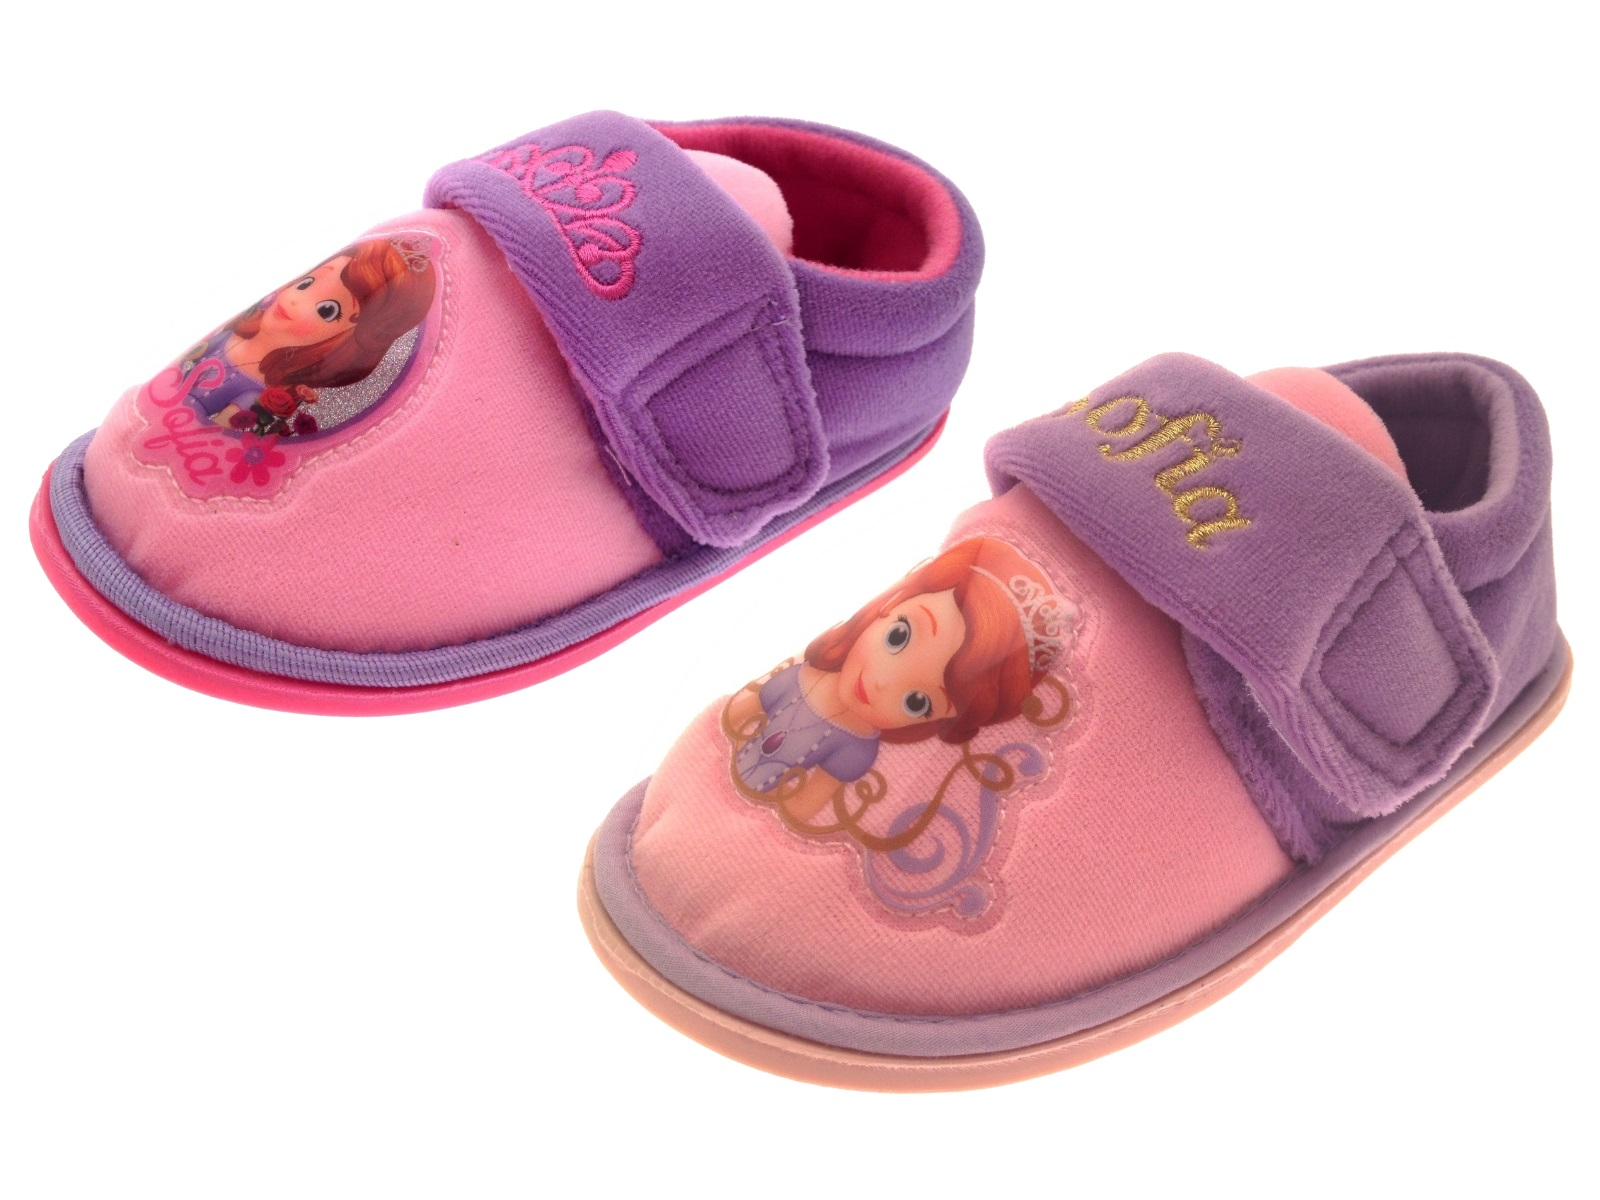 Sofia First Princess Shoes In Size Slip On